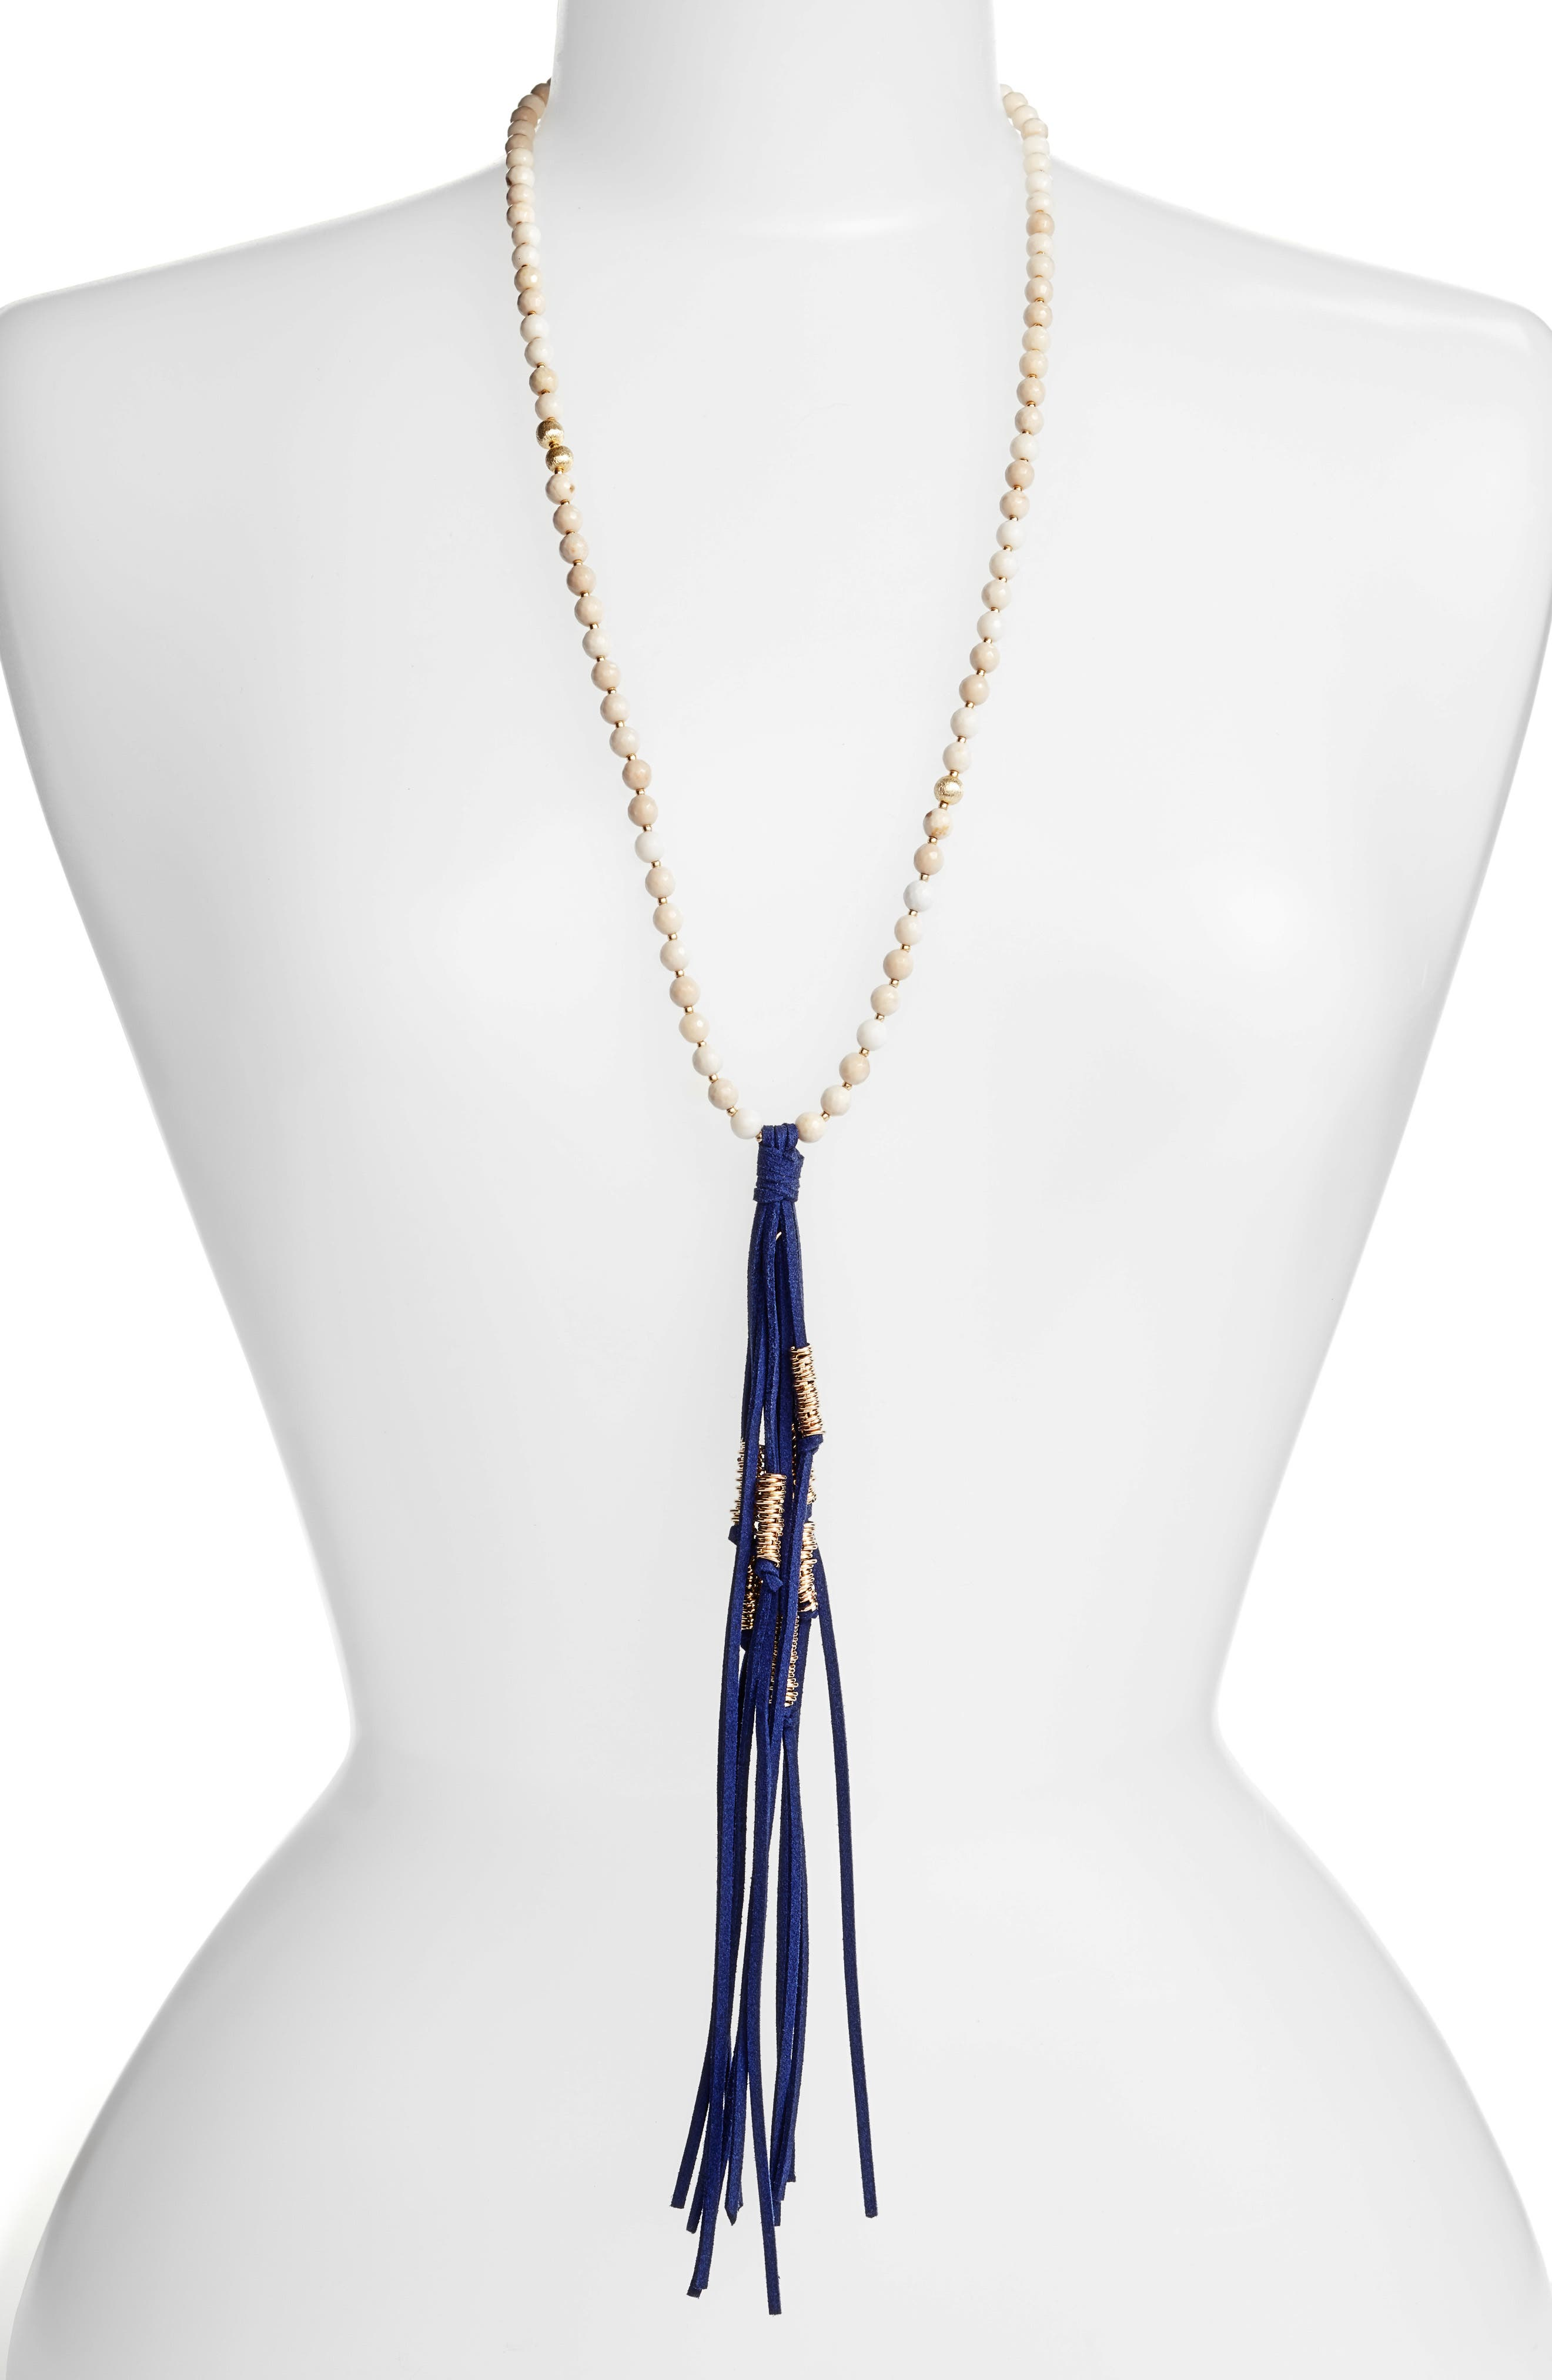 Alternate Image 1 Selected - Love's Affect Semiprecious Stone Tassel Necklace